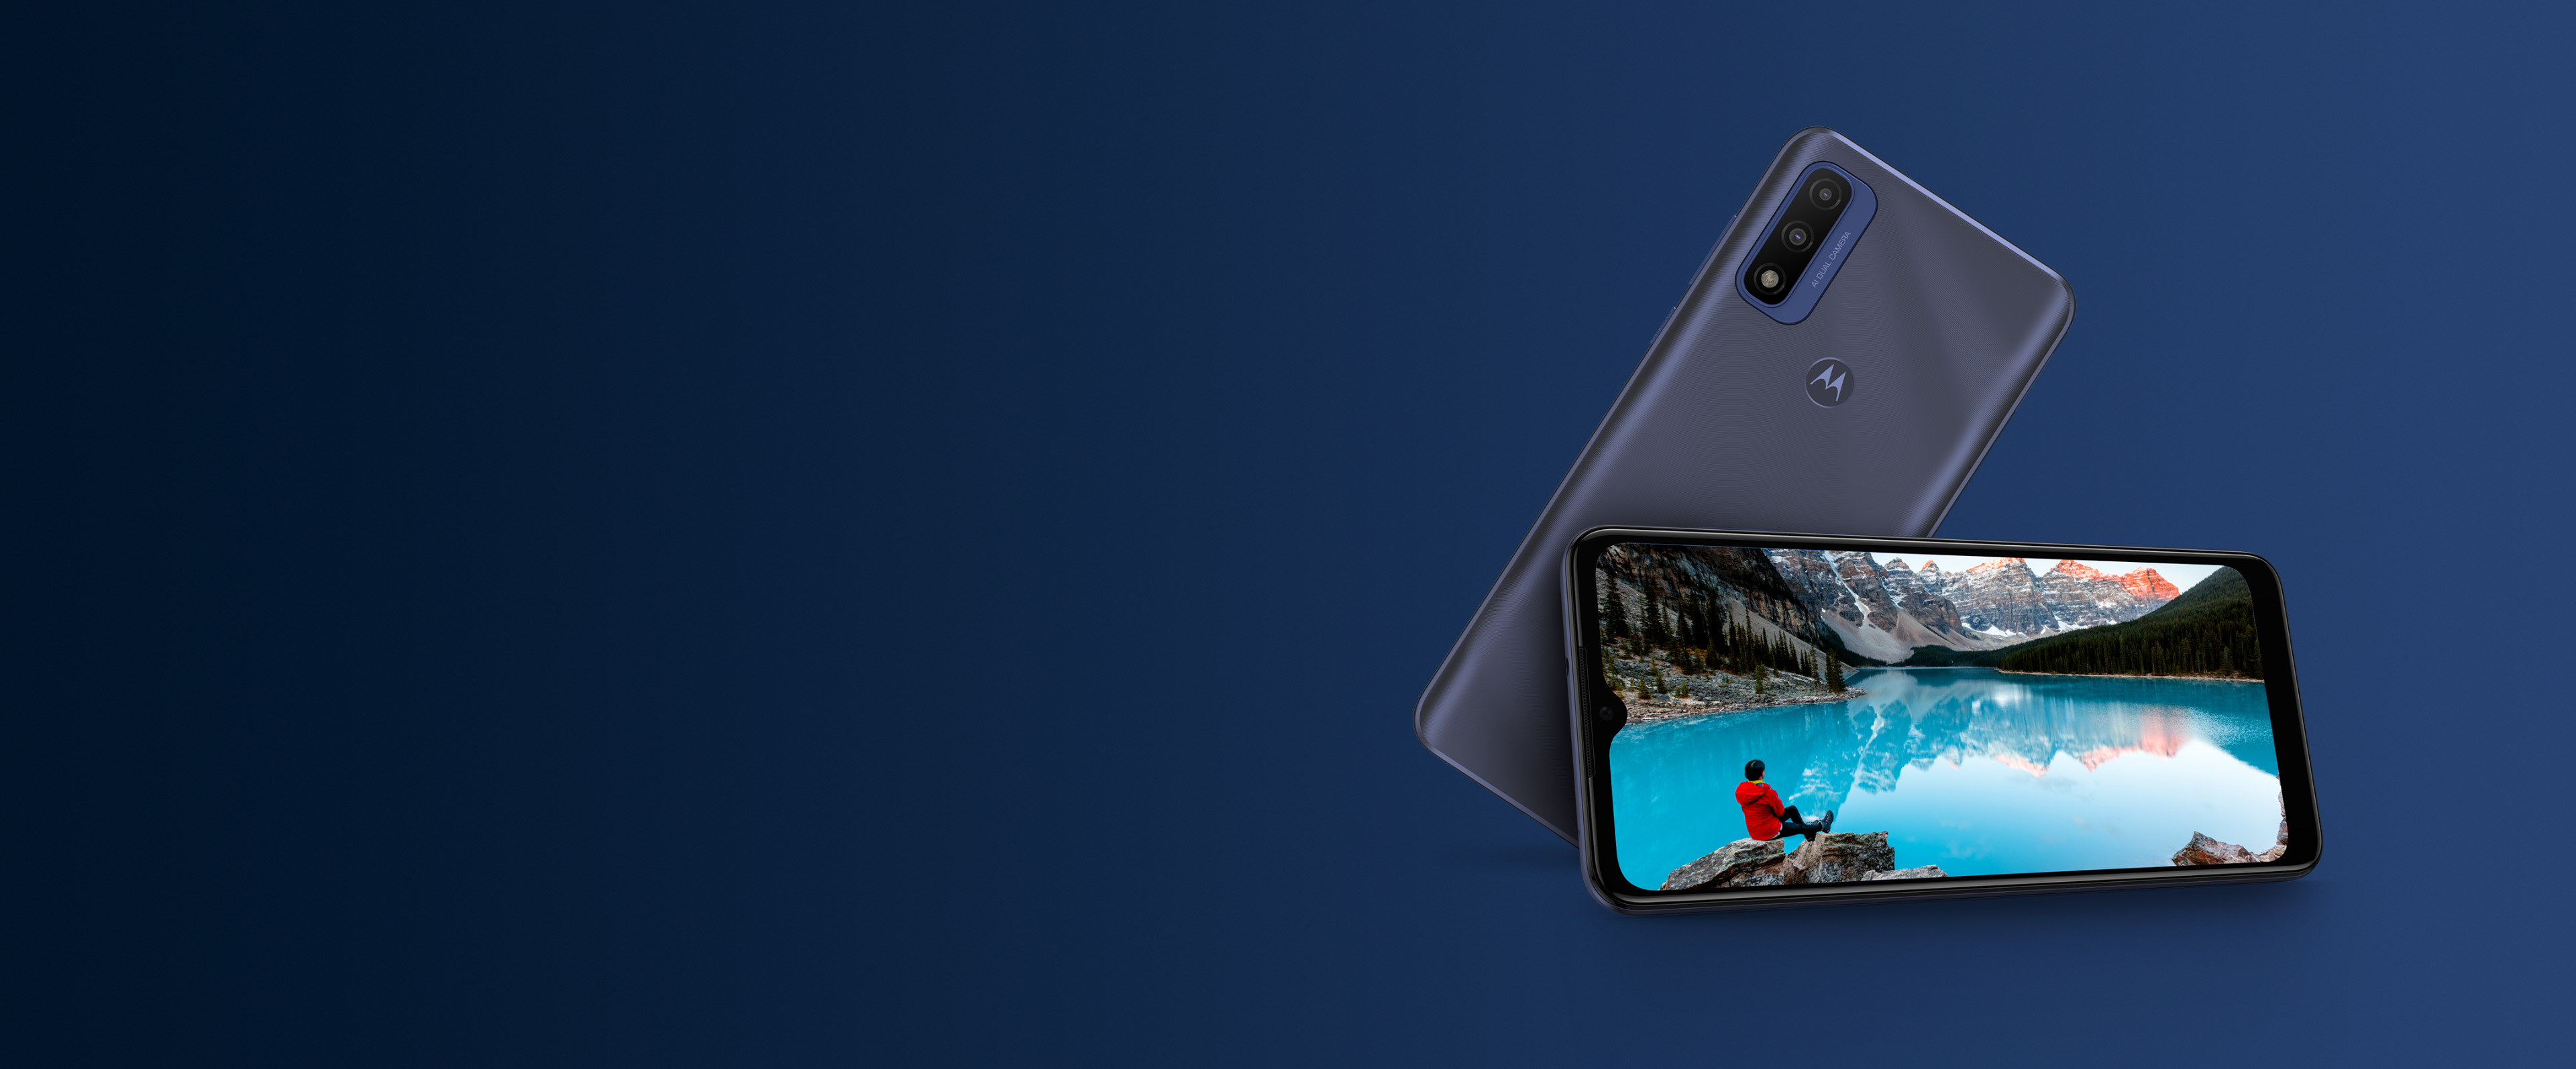 ULTRA-WIDE DISPLAY.<br>2-DAY BATTERY.